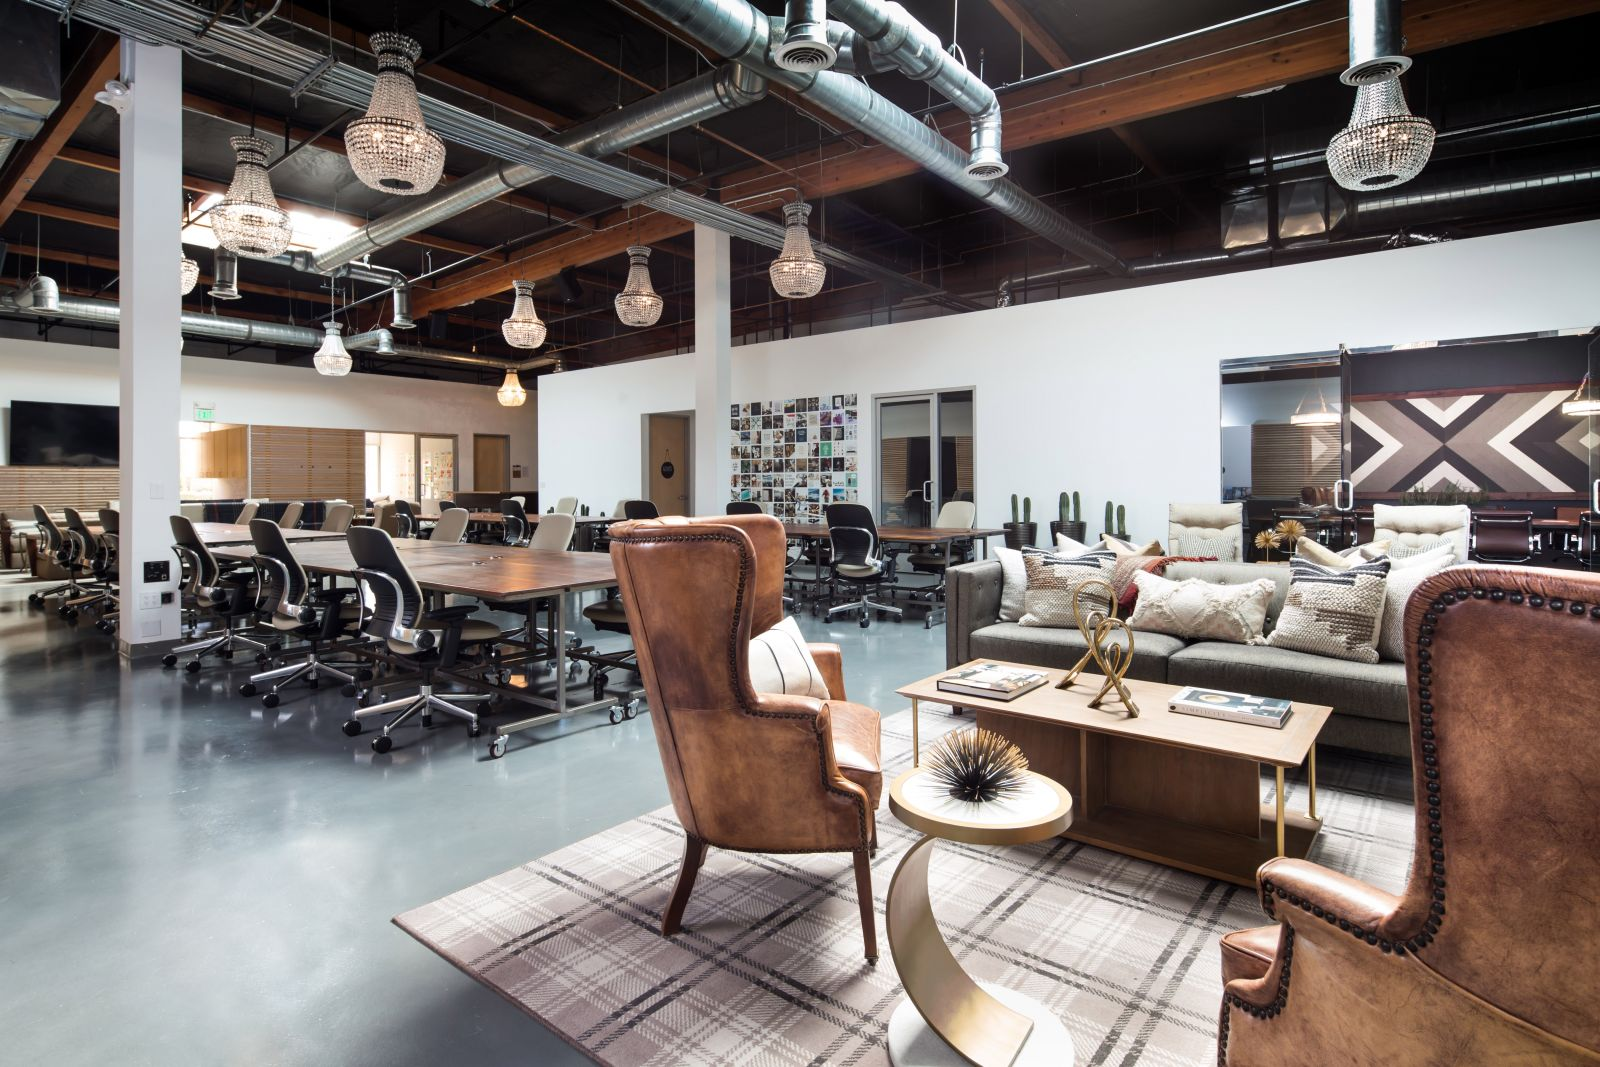 Coworking Space Costa Mesa: 10 Best Spaces with Pricing, Amenities & Location [2021] 28